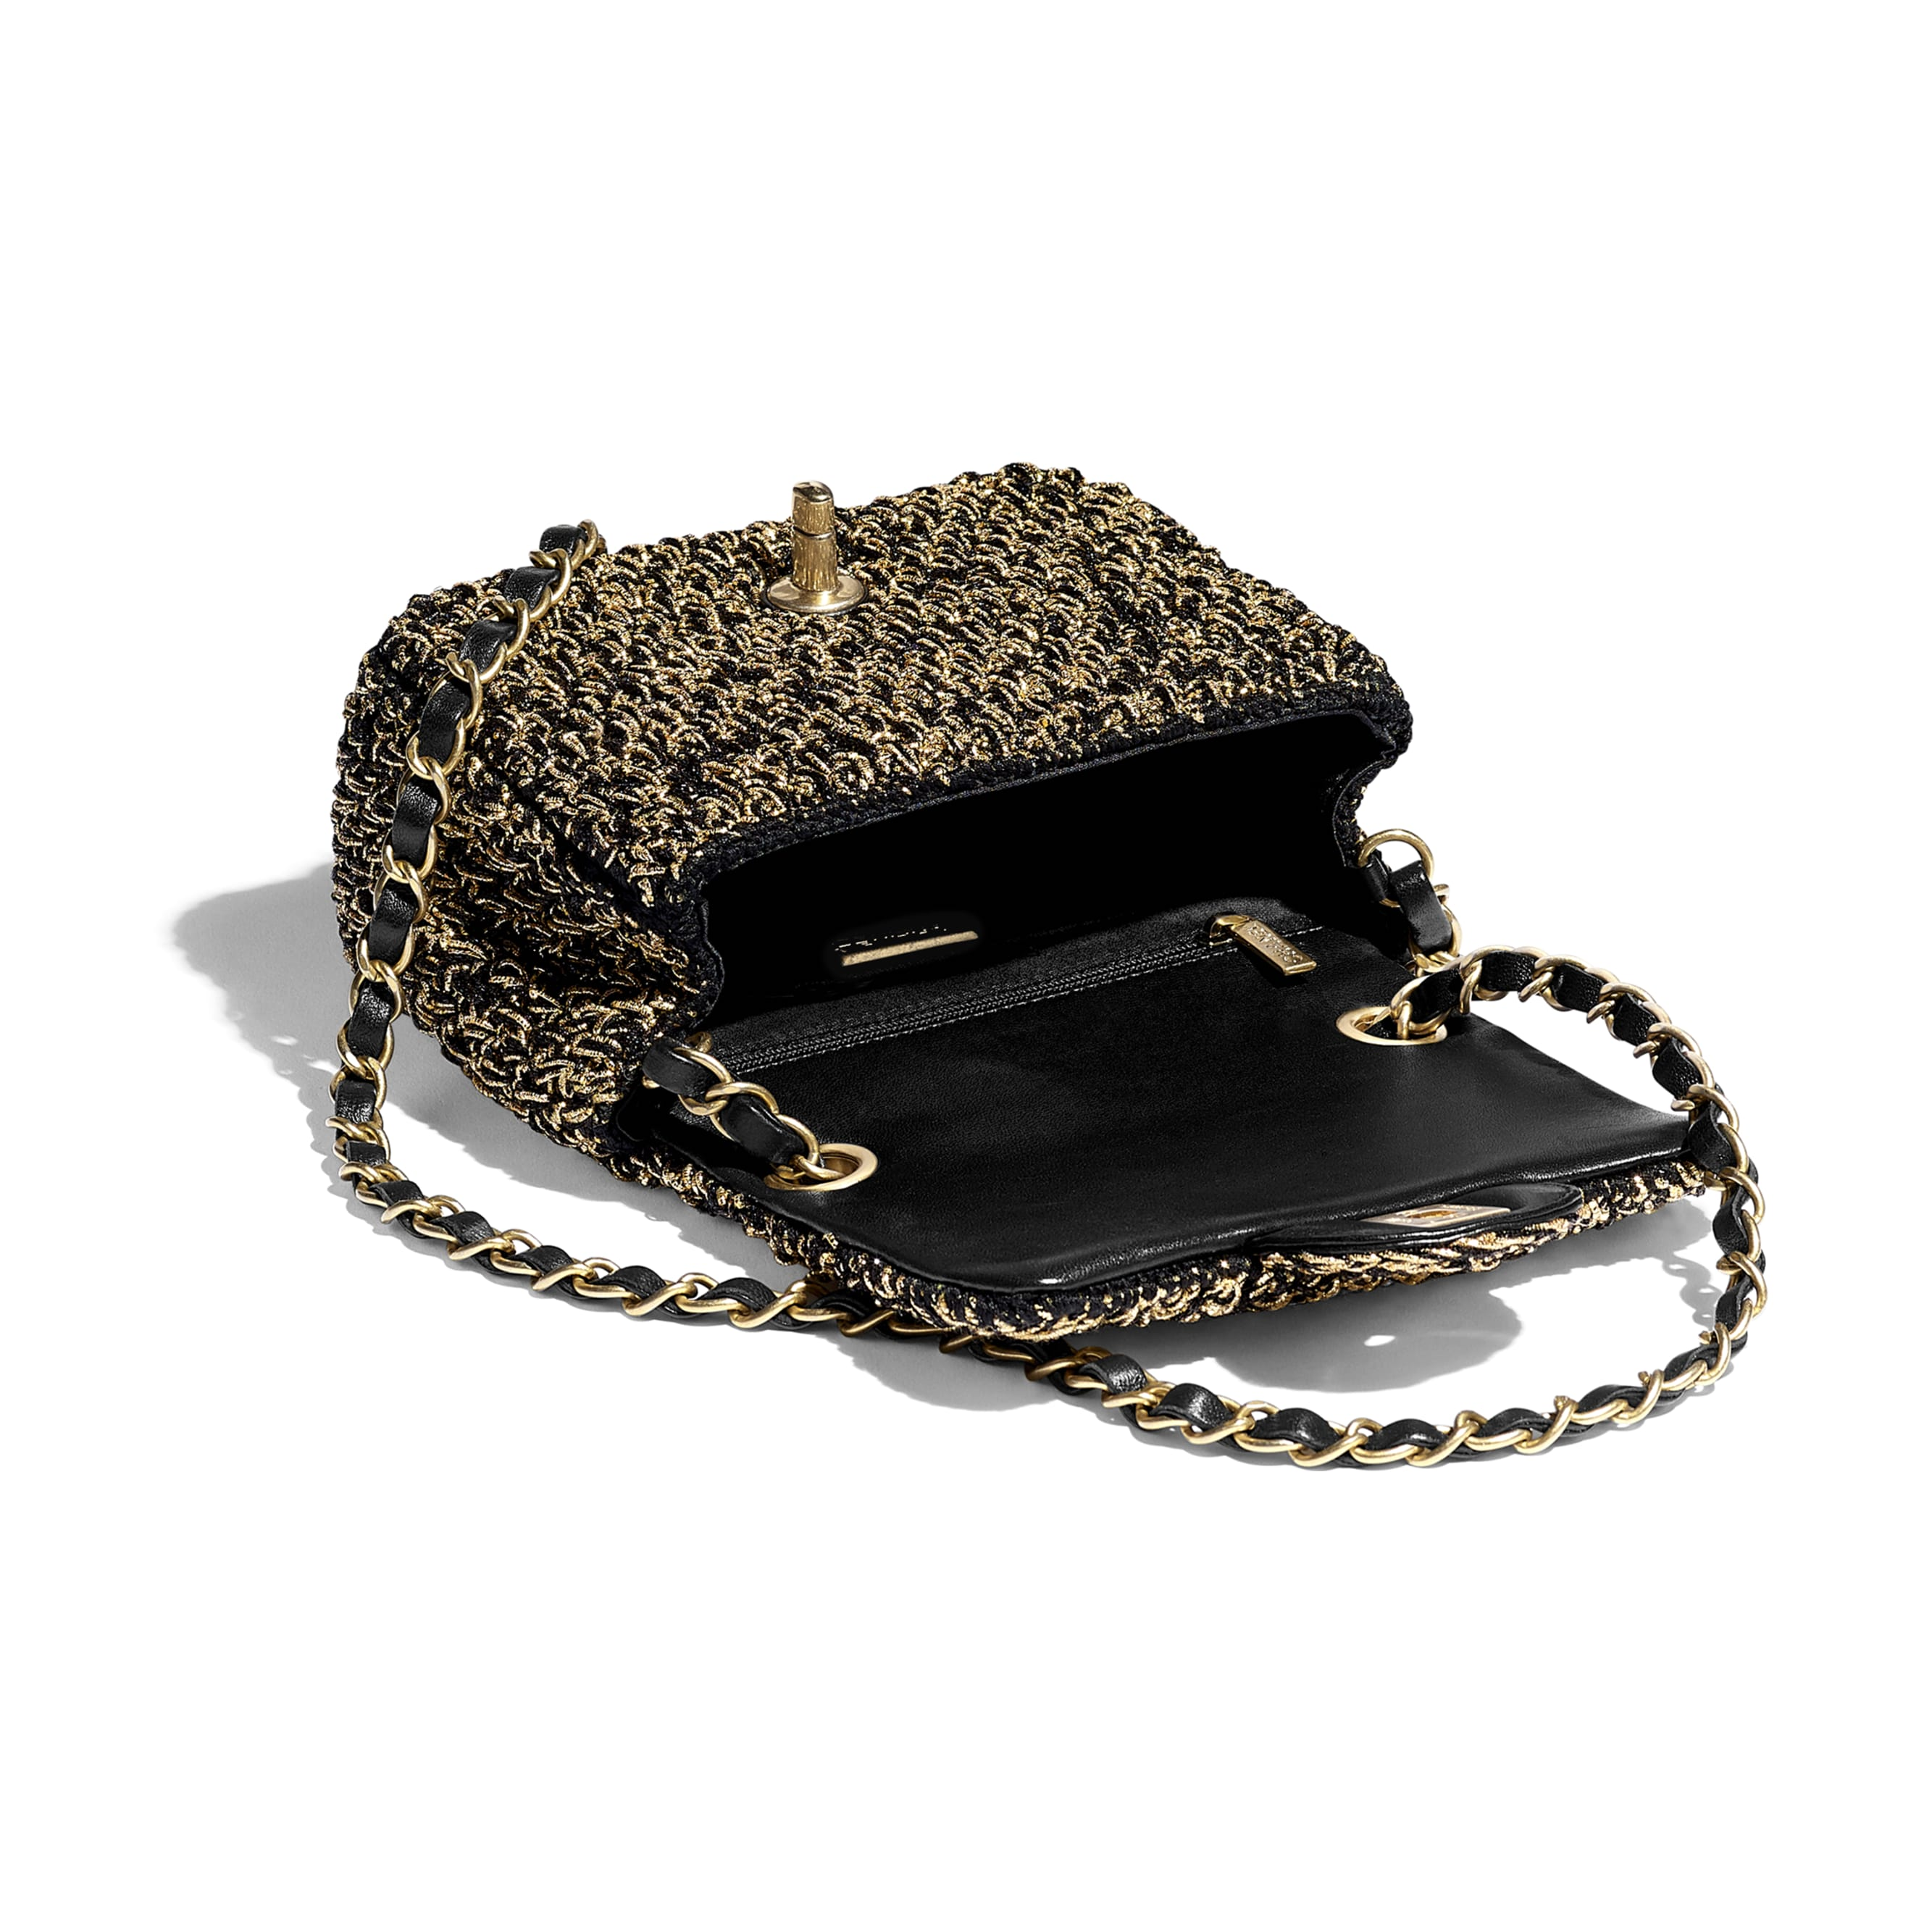 Mini Flap Bag - Black & Gold - Cotton, Mixed Fibers & Gold-Tone Metal - Other view - see standard sized version